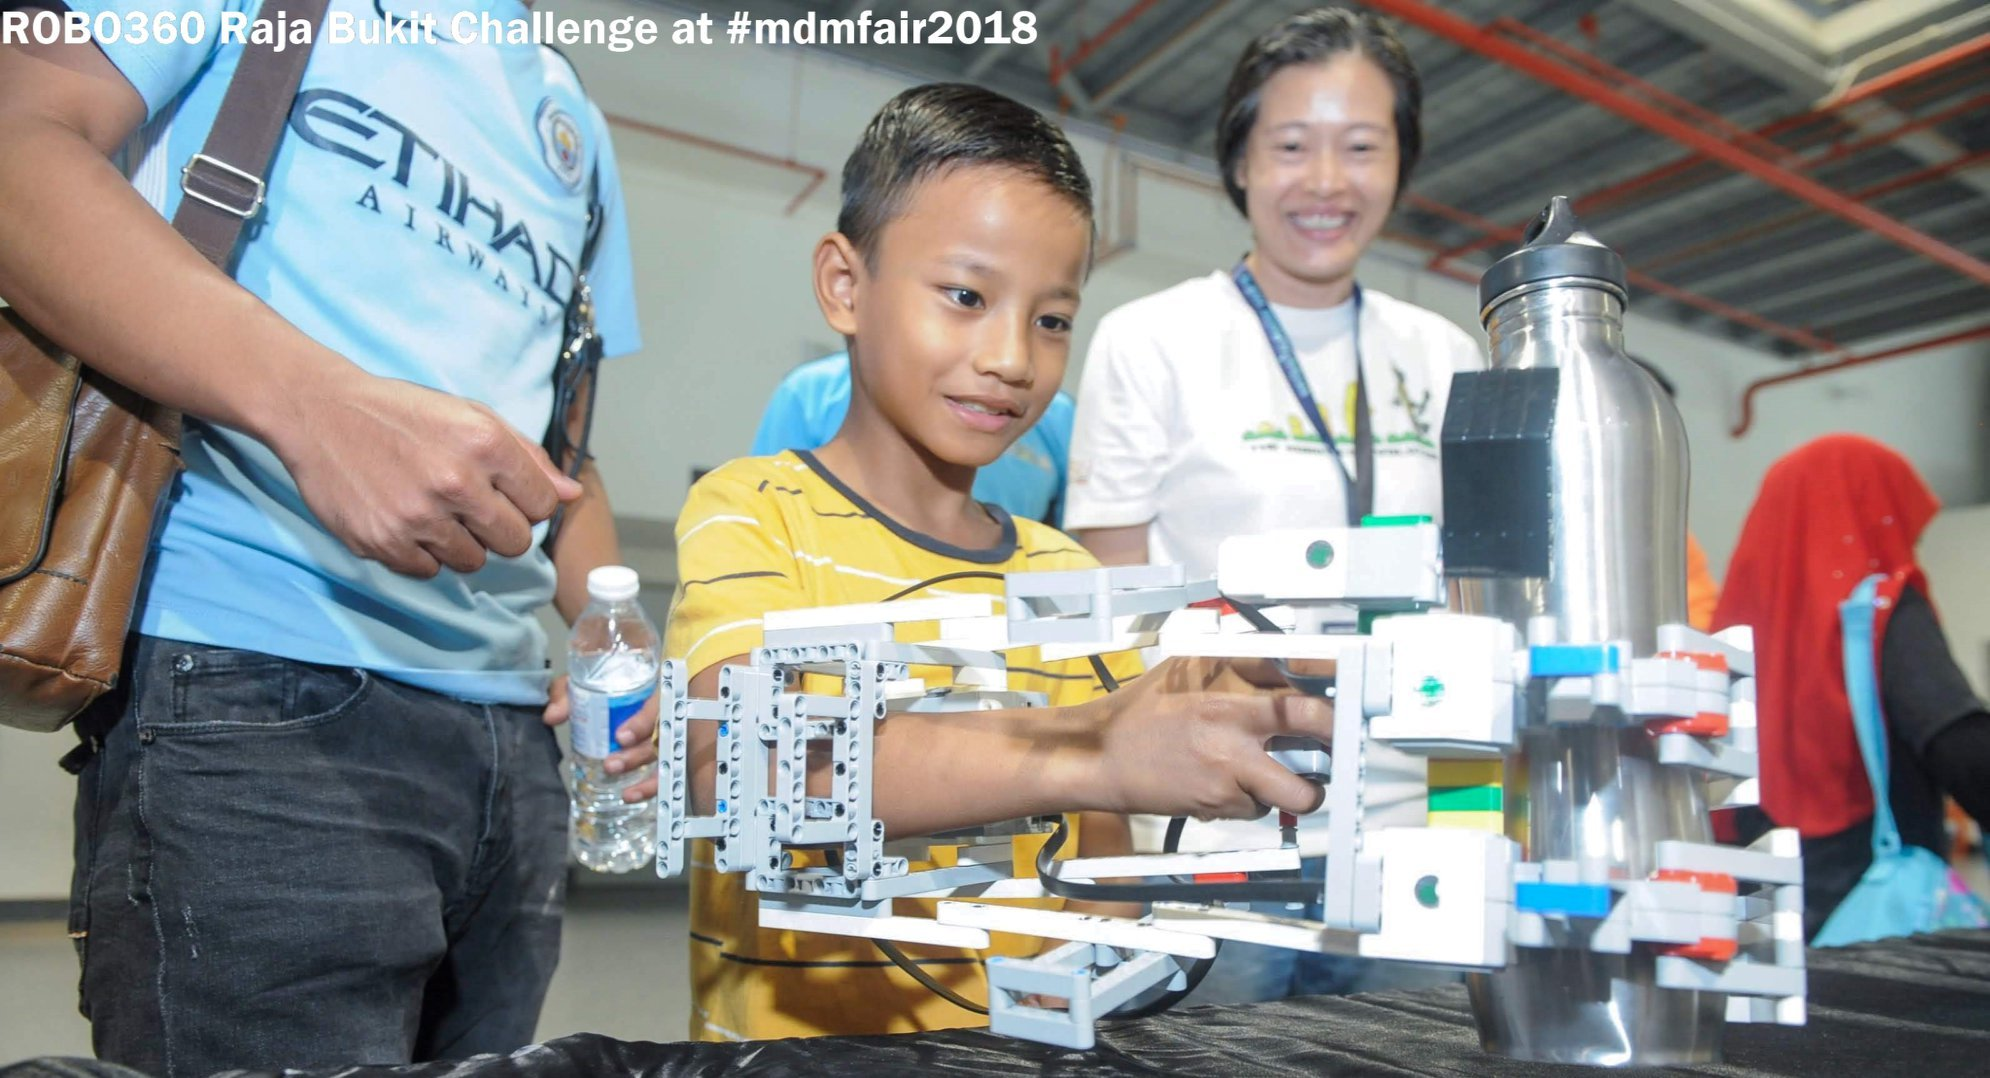 STUDENT PARTICIPATE ROBOTICS COMPETITION IN CLASS